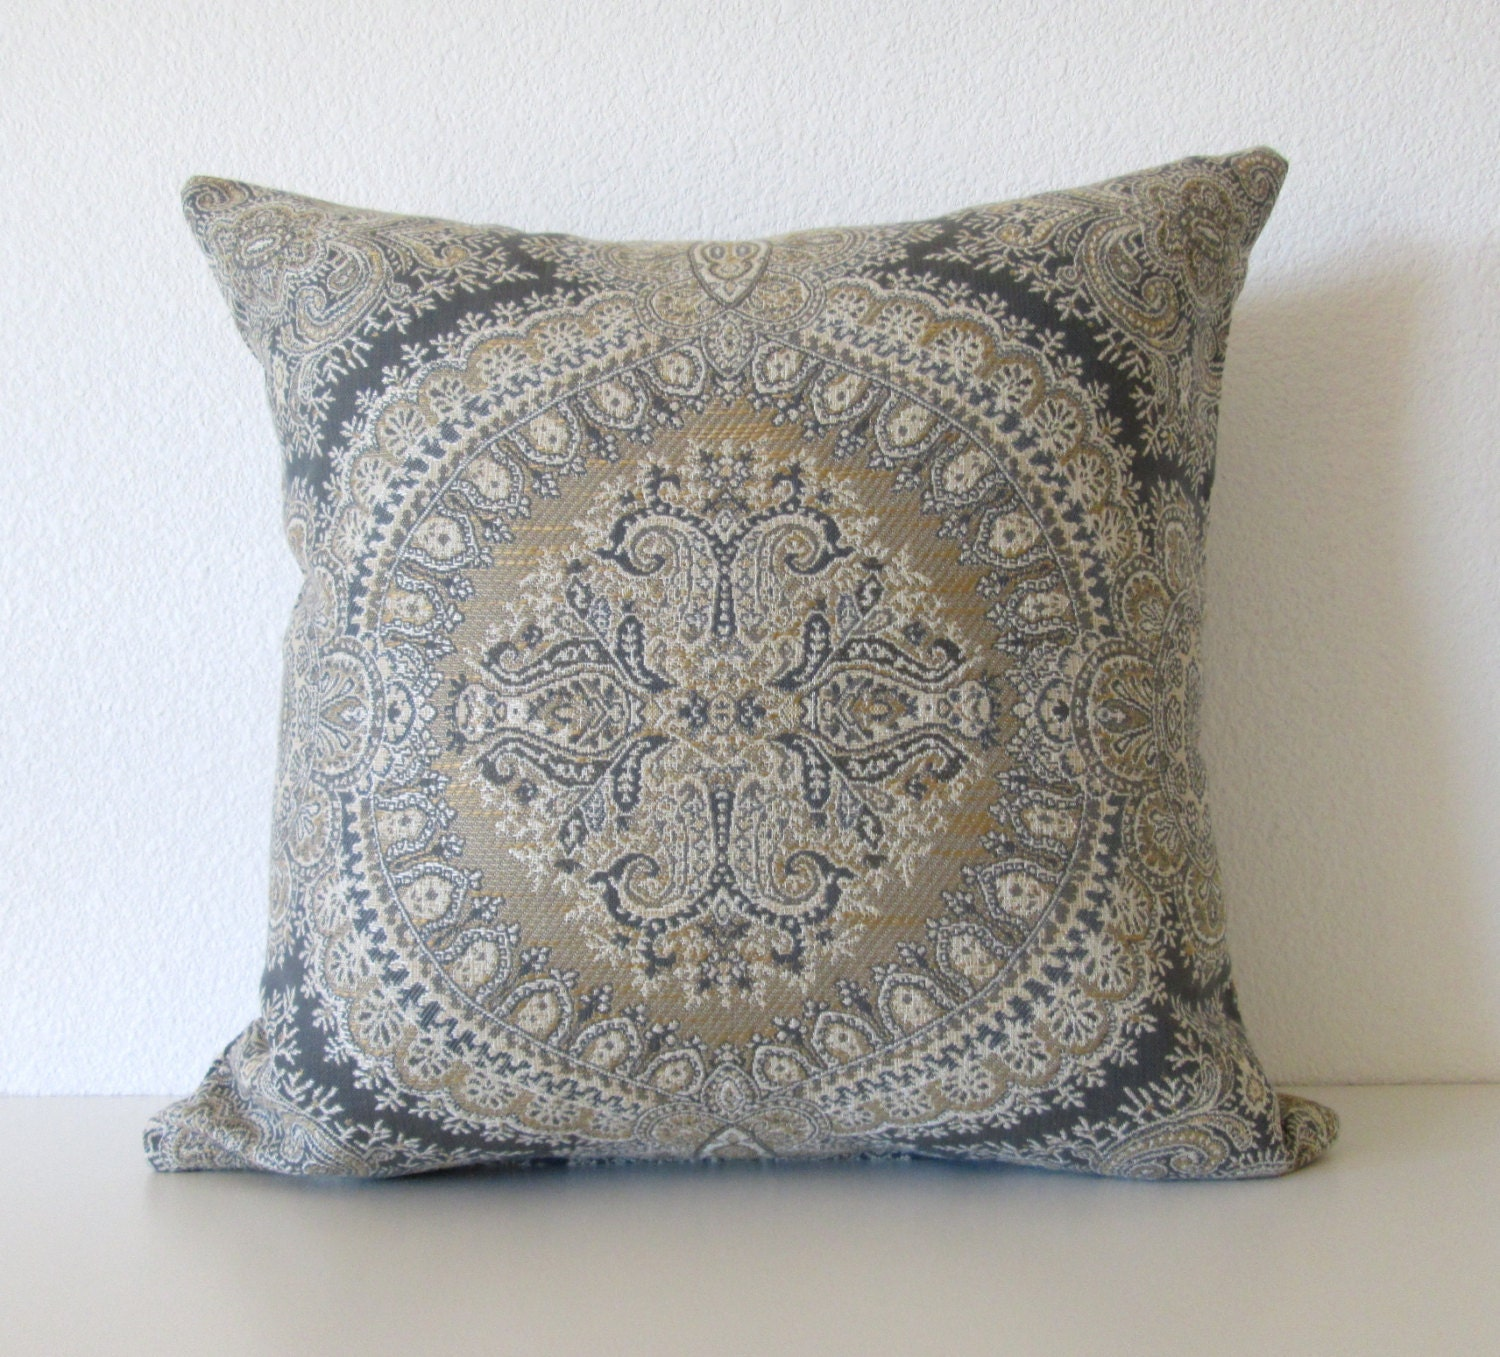 Decorative Pillows With Grey : Decorative pillow cover 18x18 Dark Gray by chicdecorpillows